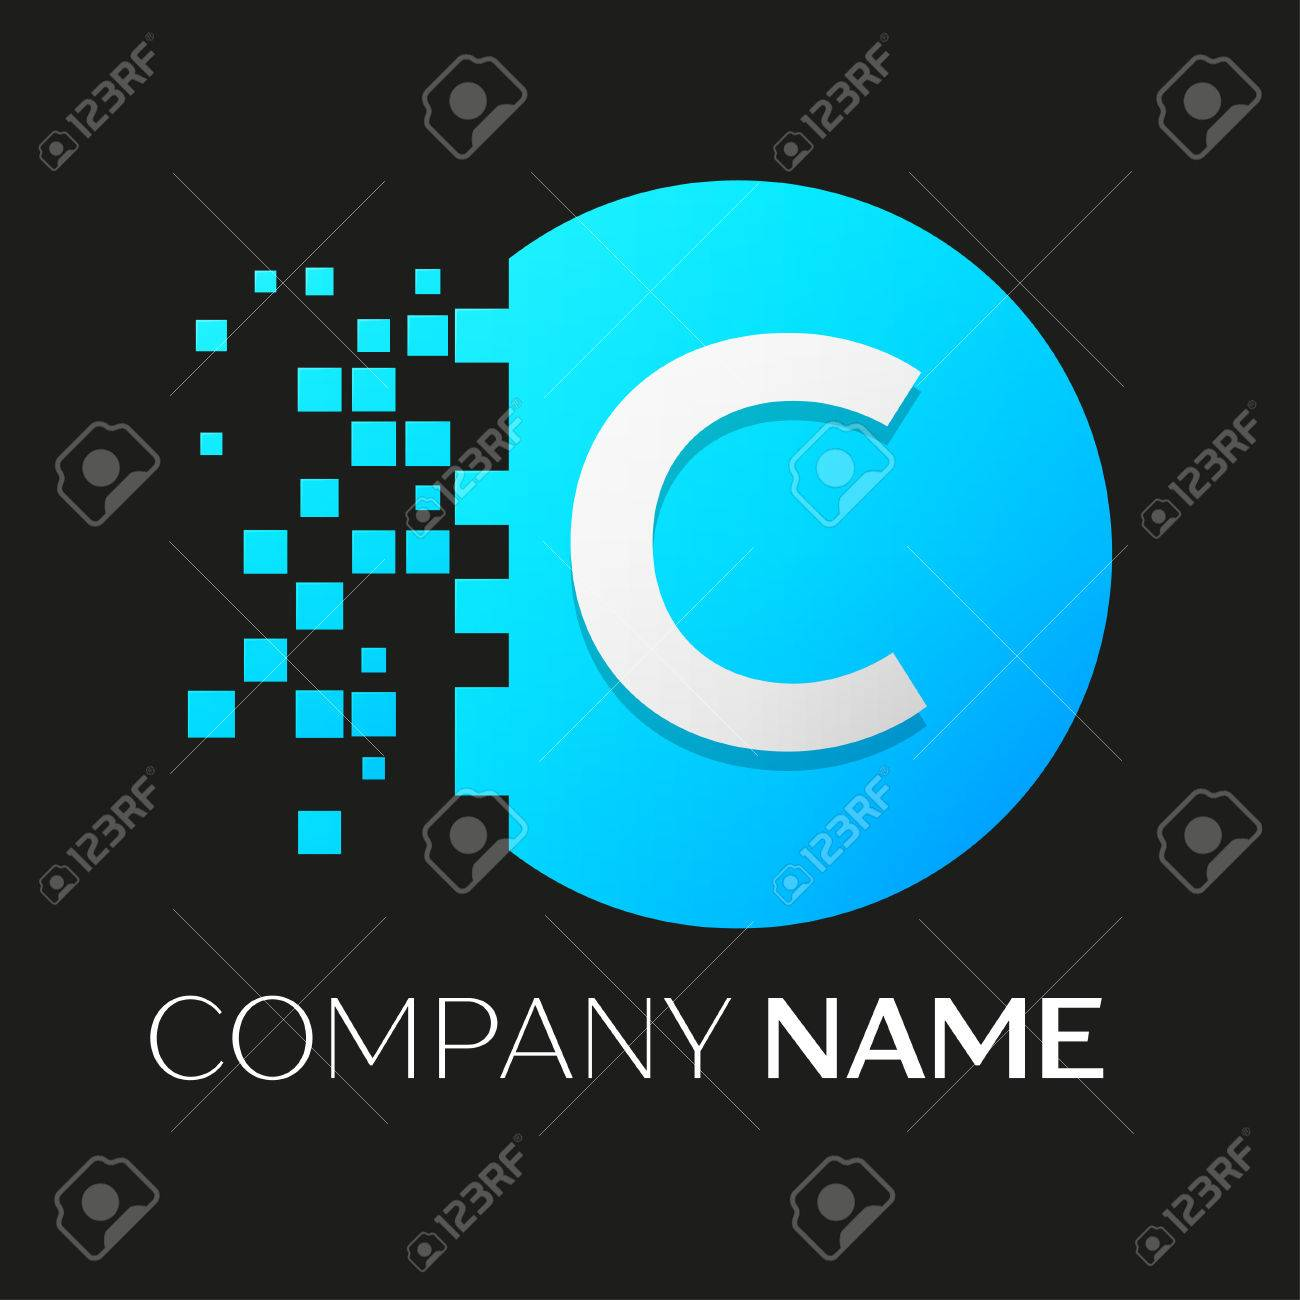 Realistic letter c vector logo symbol in the colorful circle realistic letter c vector logo symbol in the colorful circle with shattered blocks on black background biocorpaavc Images